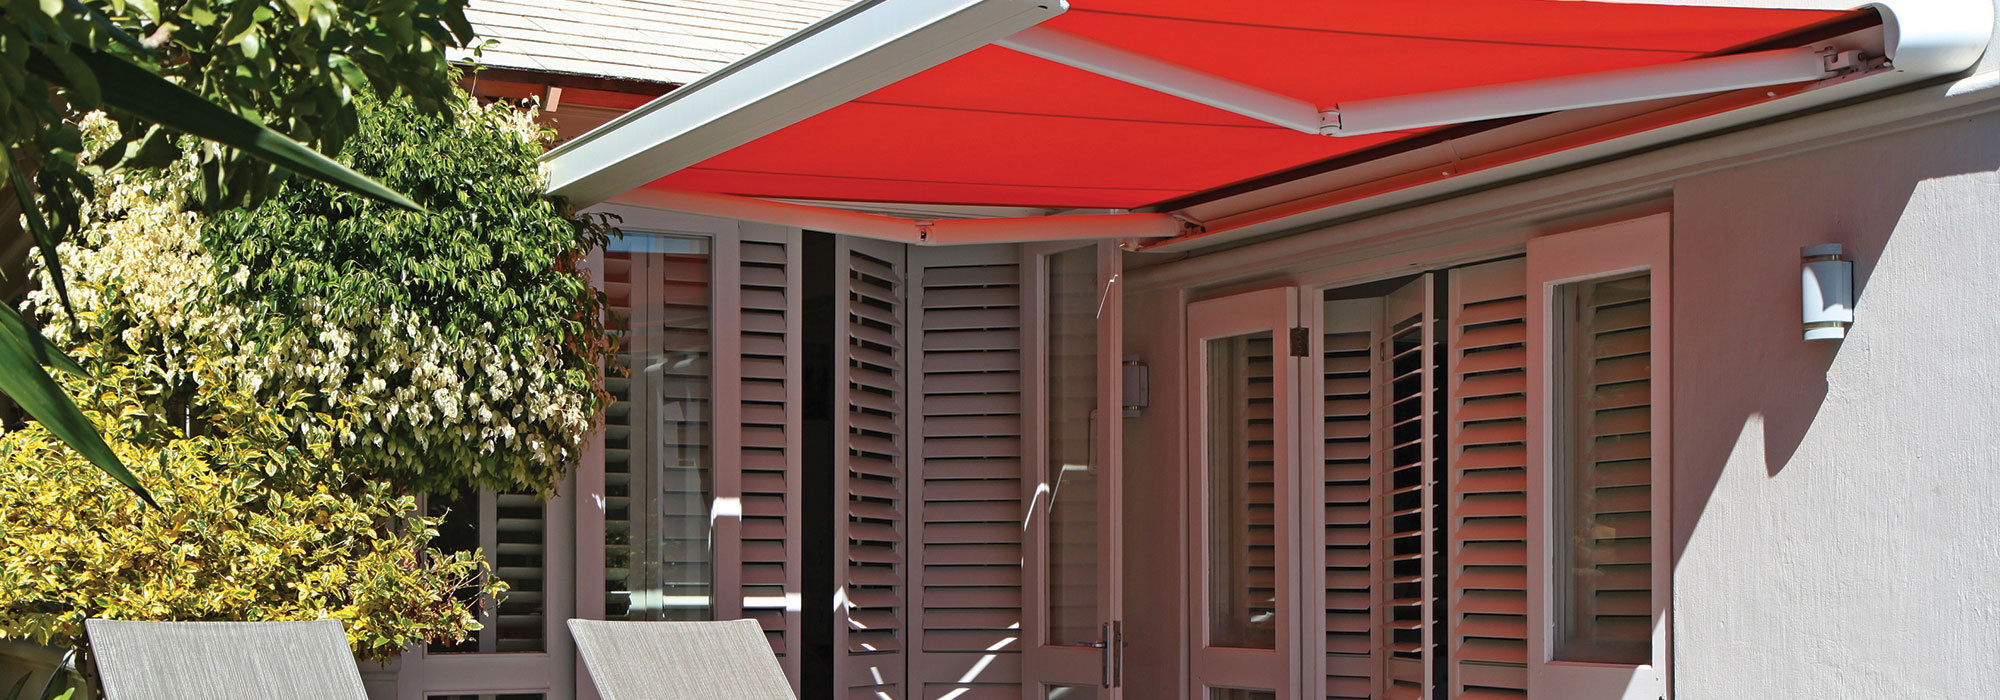 Throw Shade at Summer with Shutters and Awnings